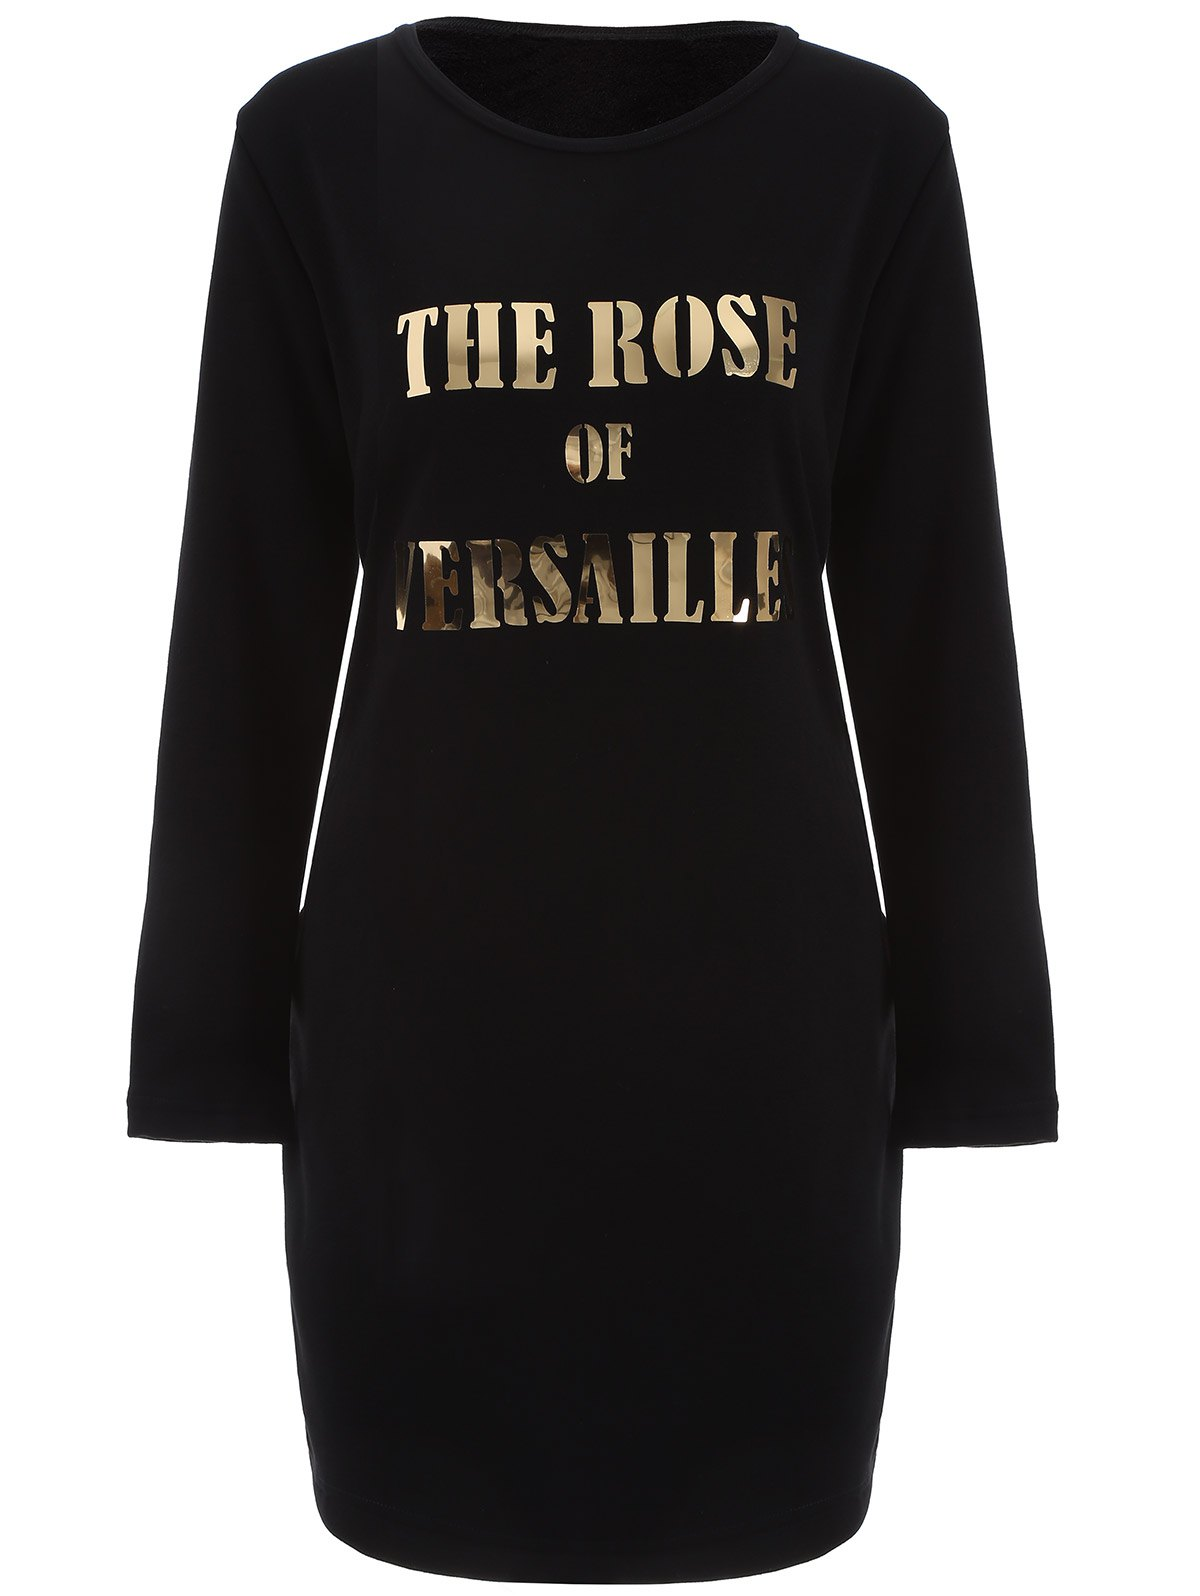 The Rose of Versailles Plus Size DressWomen<br><br><br>Size: 4XL<br>Color: BLACK